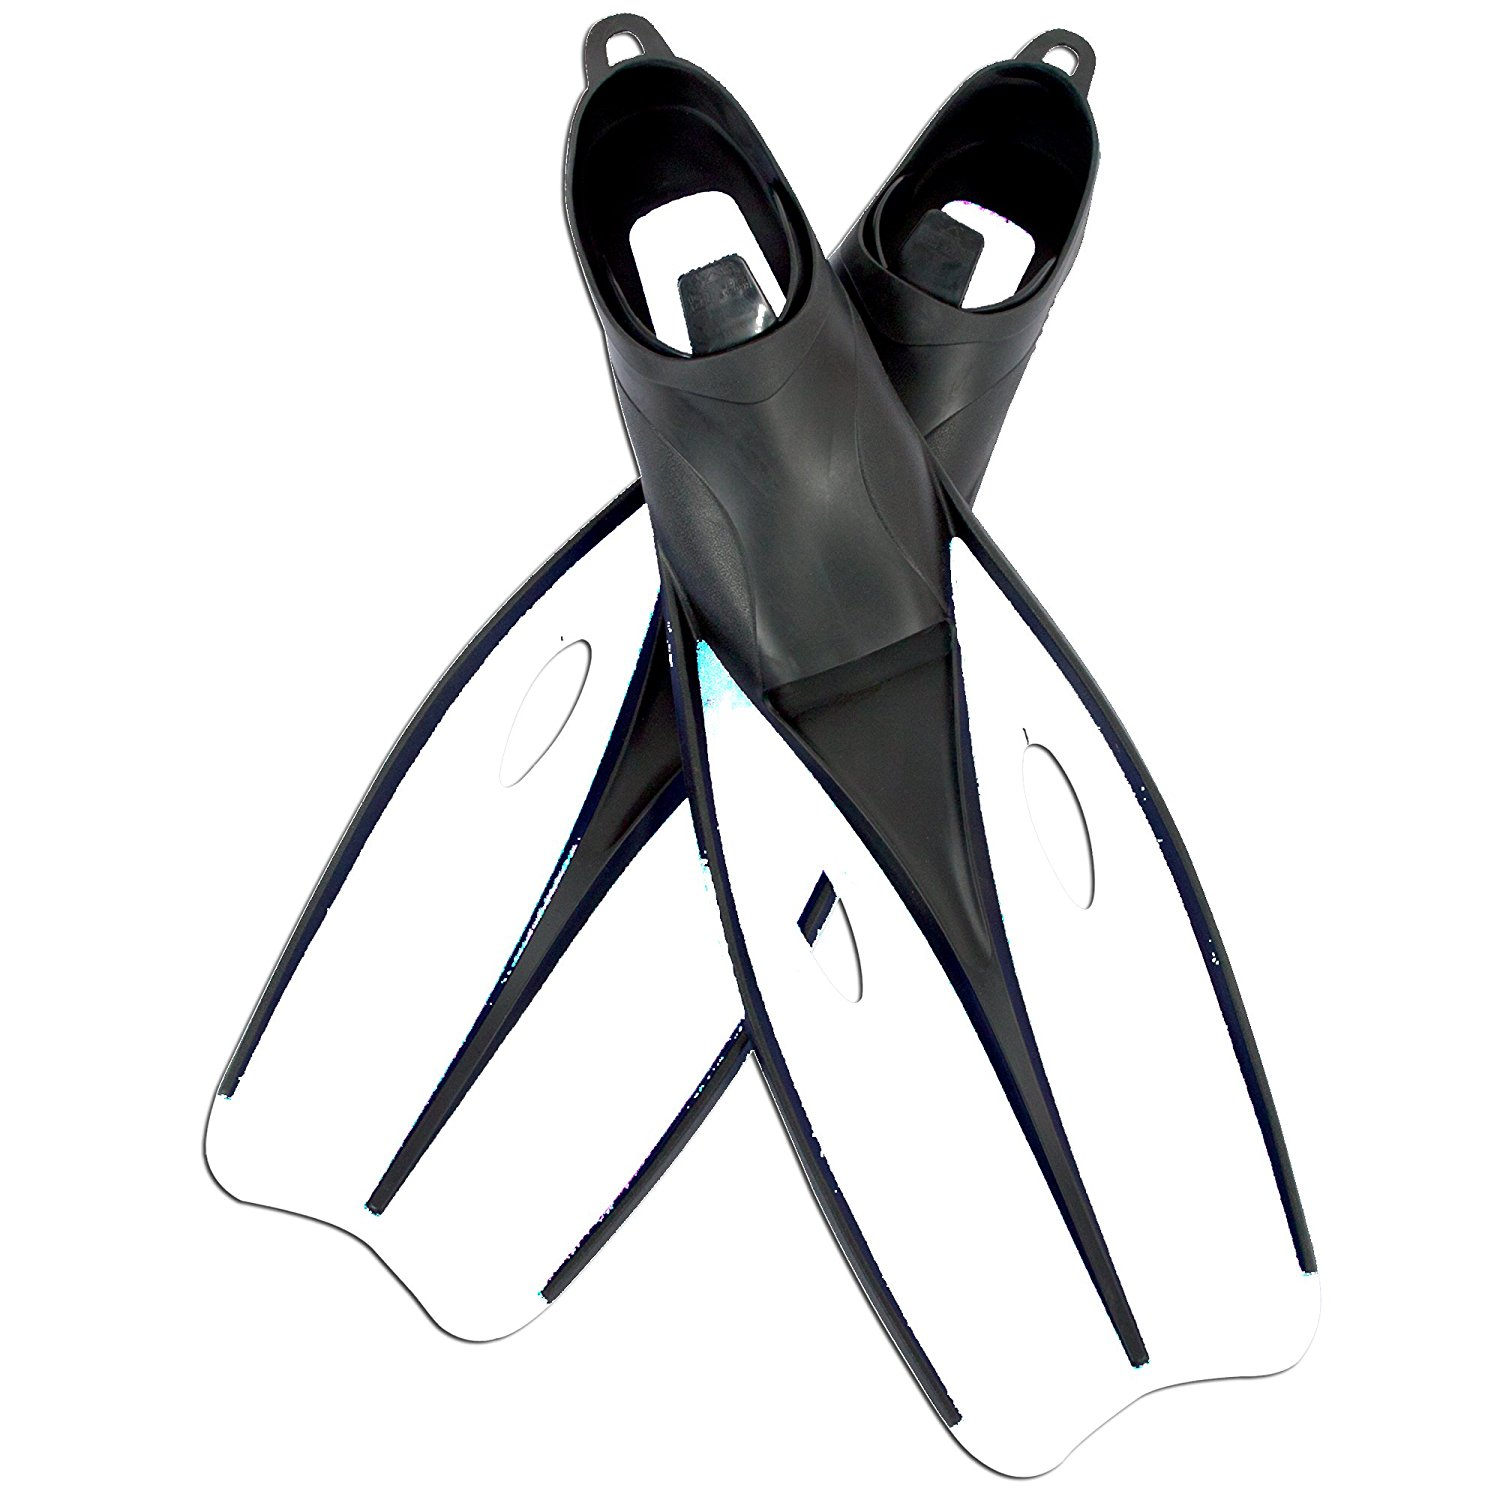 Scuba Dive Snorkeling Swimming Fins Flippers (Yellow), Fin Size: Large (US 8-9.5) By Endura